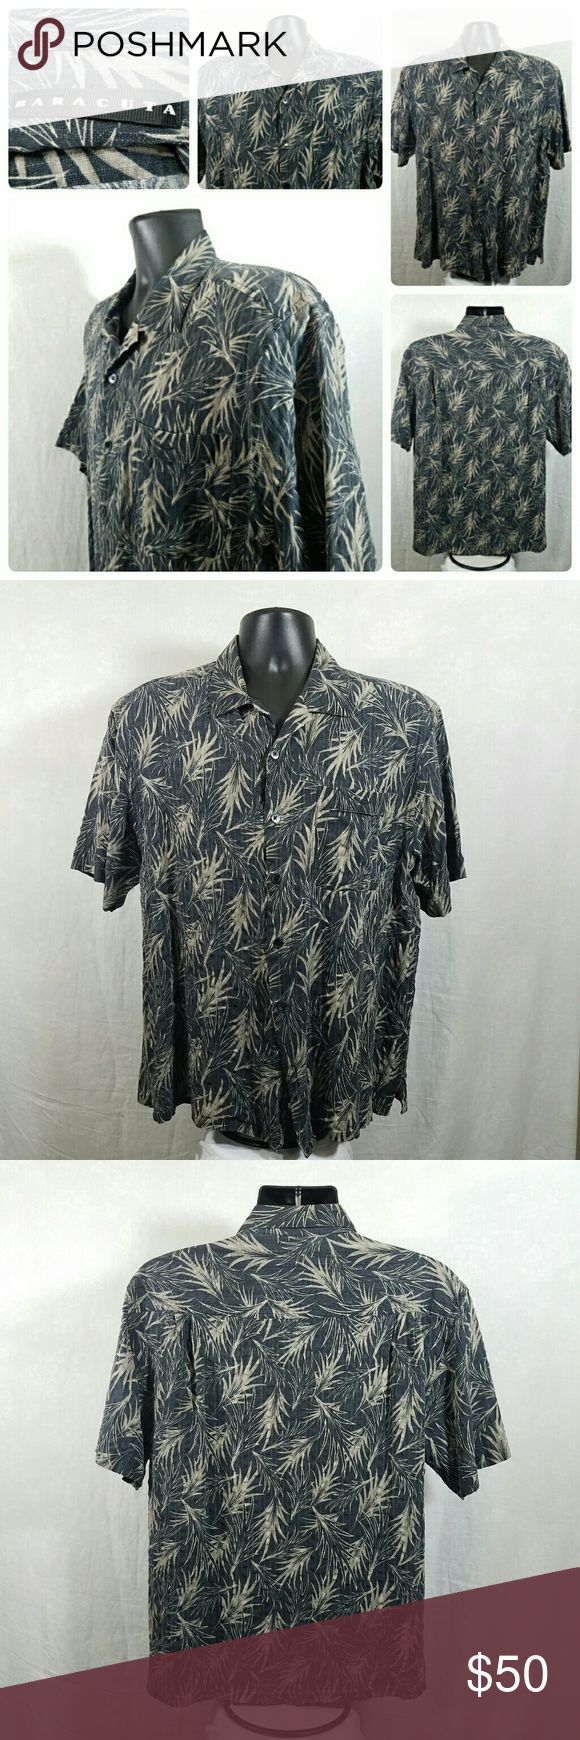 Mens Baracuta 100% Silk Hawaiian Shirt Sz L Mens Baracuta 100% Silk Hawaiian Shirt Sz L missing bottom button. This is not a cheap Brand shirt Google it if you don't know the brand.  Other than that it's in great shape.  Feel free to ask any questions and make offers. Baracuta Shirts Casual Button Down Shirts